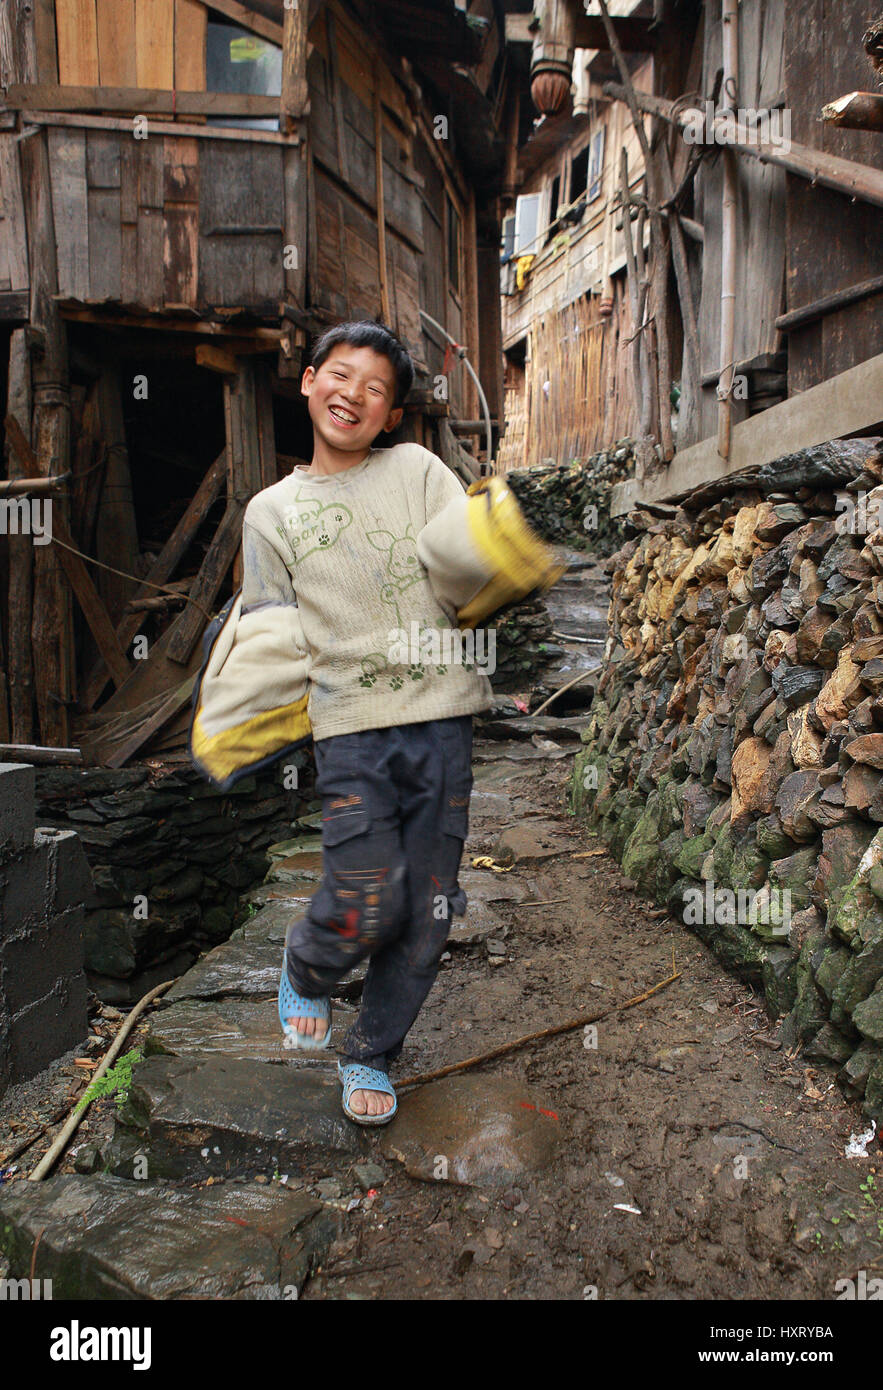 XIAOZHAI VILLAGE, GUANGSI PROVINCE,CHINA - APRIL 5: East Asia, countryside, rural Chinese boy 12 years old, dancing, - Stock Image